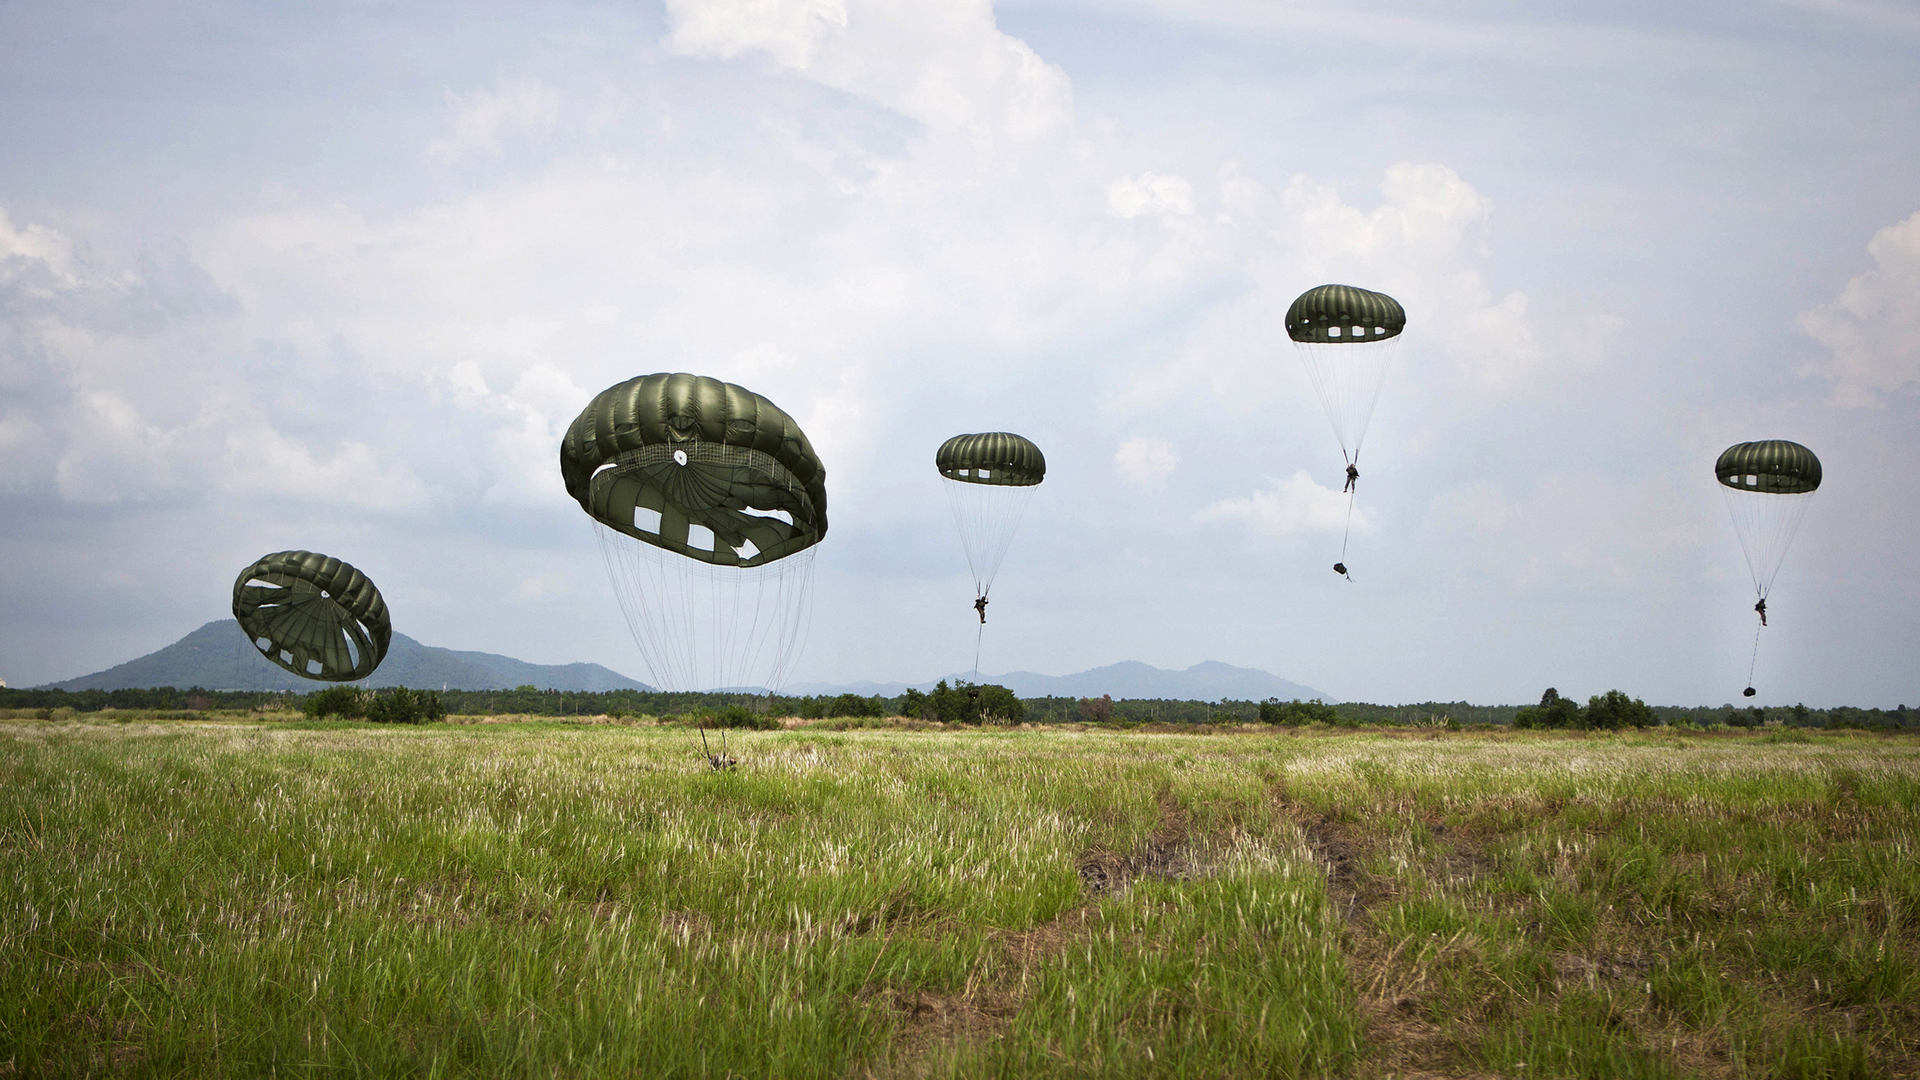 Soldiers Paratroopers Grass airbourne military wallpaper backgroundParatrooper Wallpaper